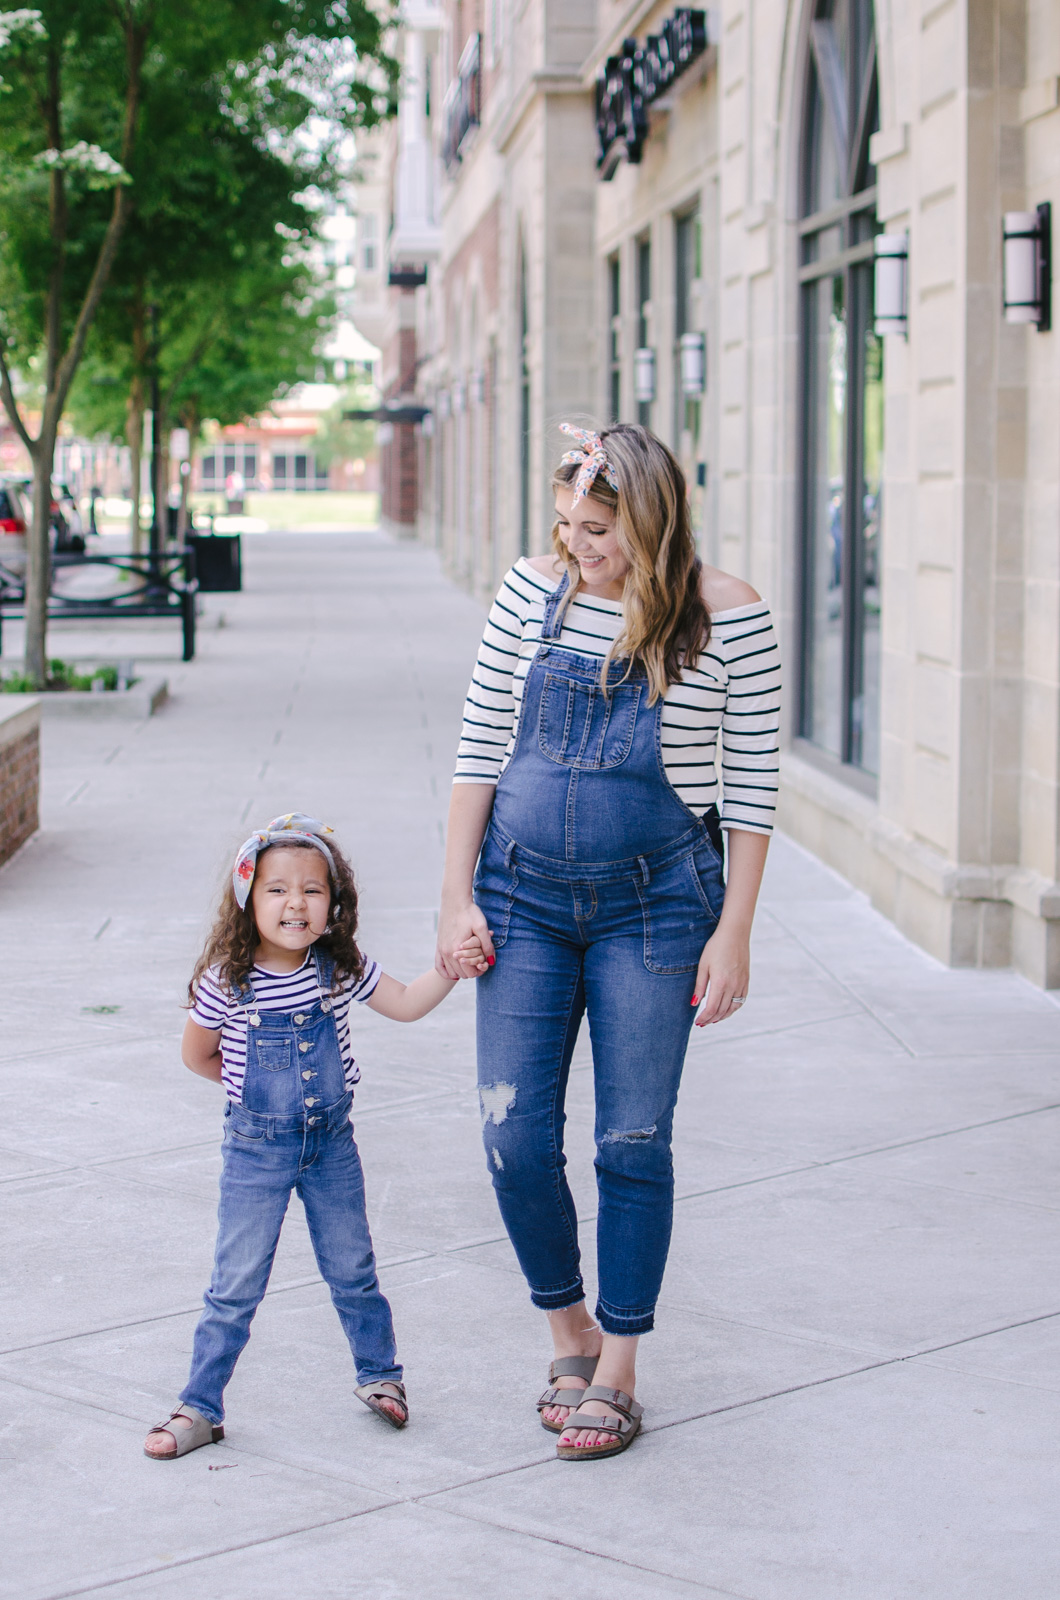 mommy and me matching overalls outfit - mother daughter outfits | bylaurenm.com